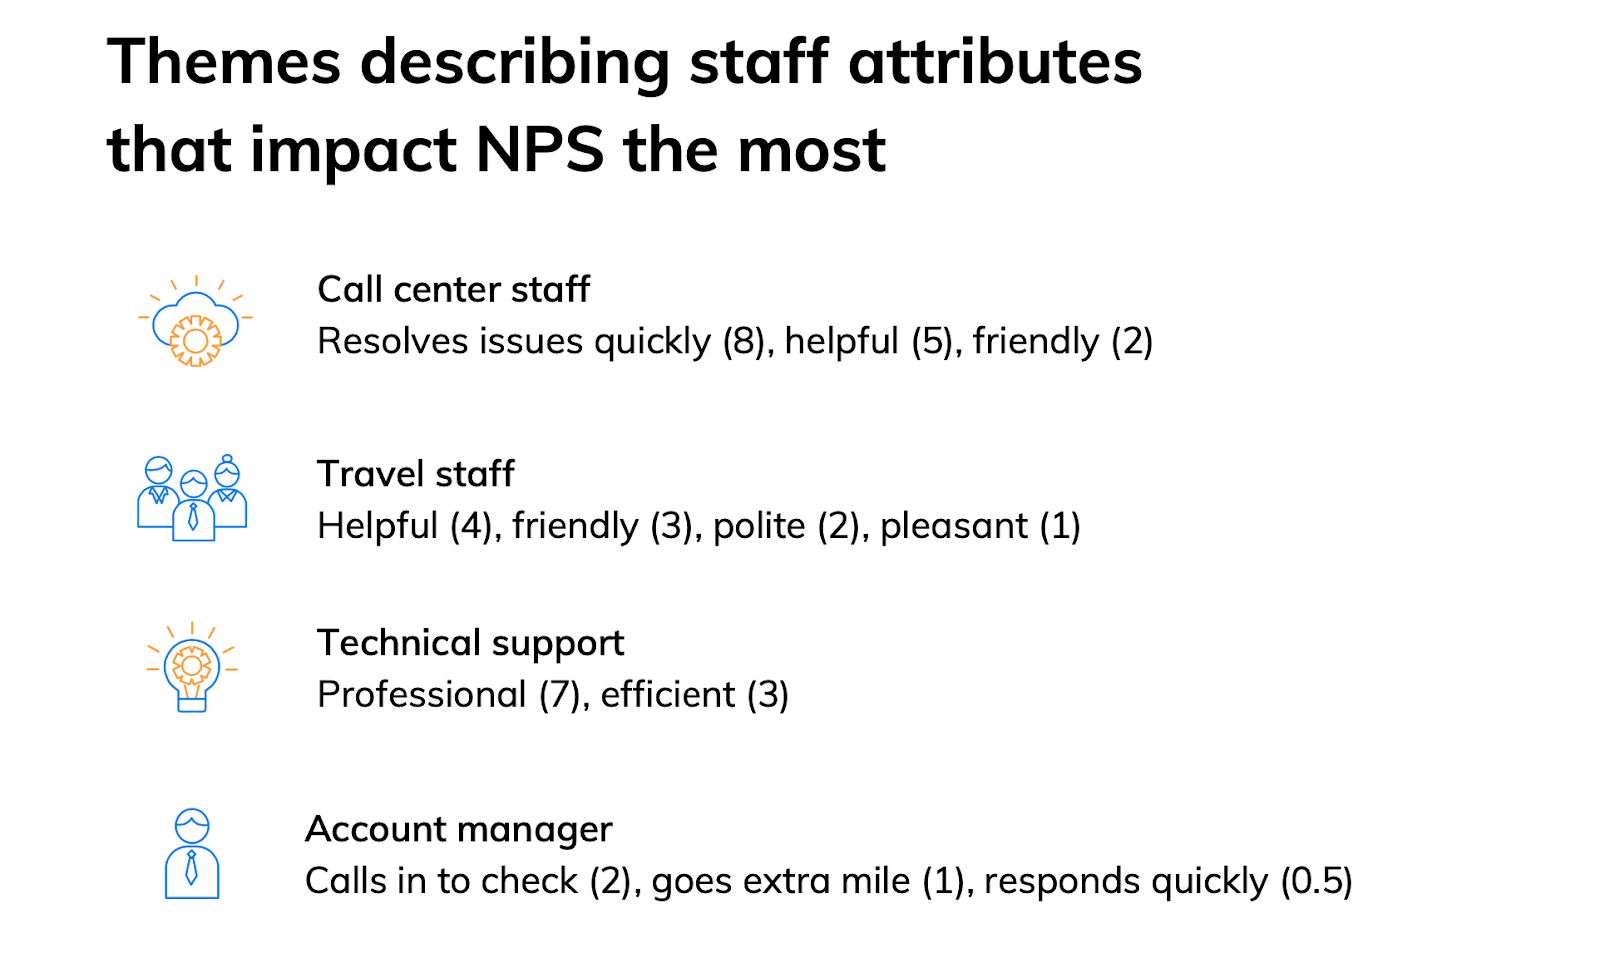 themes describing staff attributes that impact NPS the most